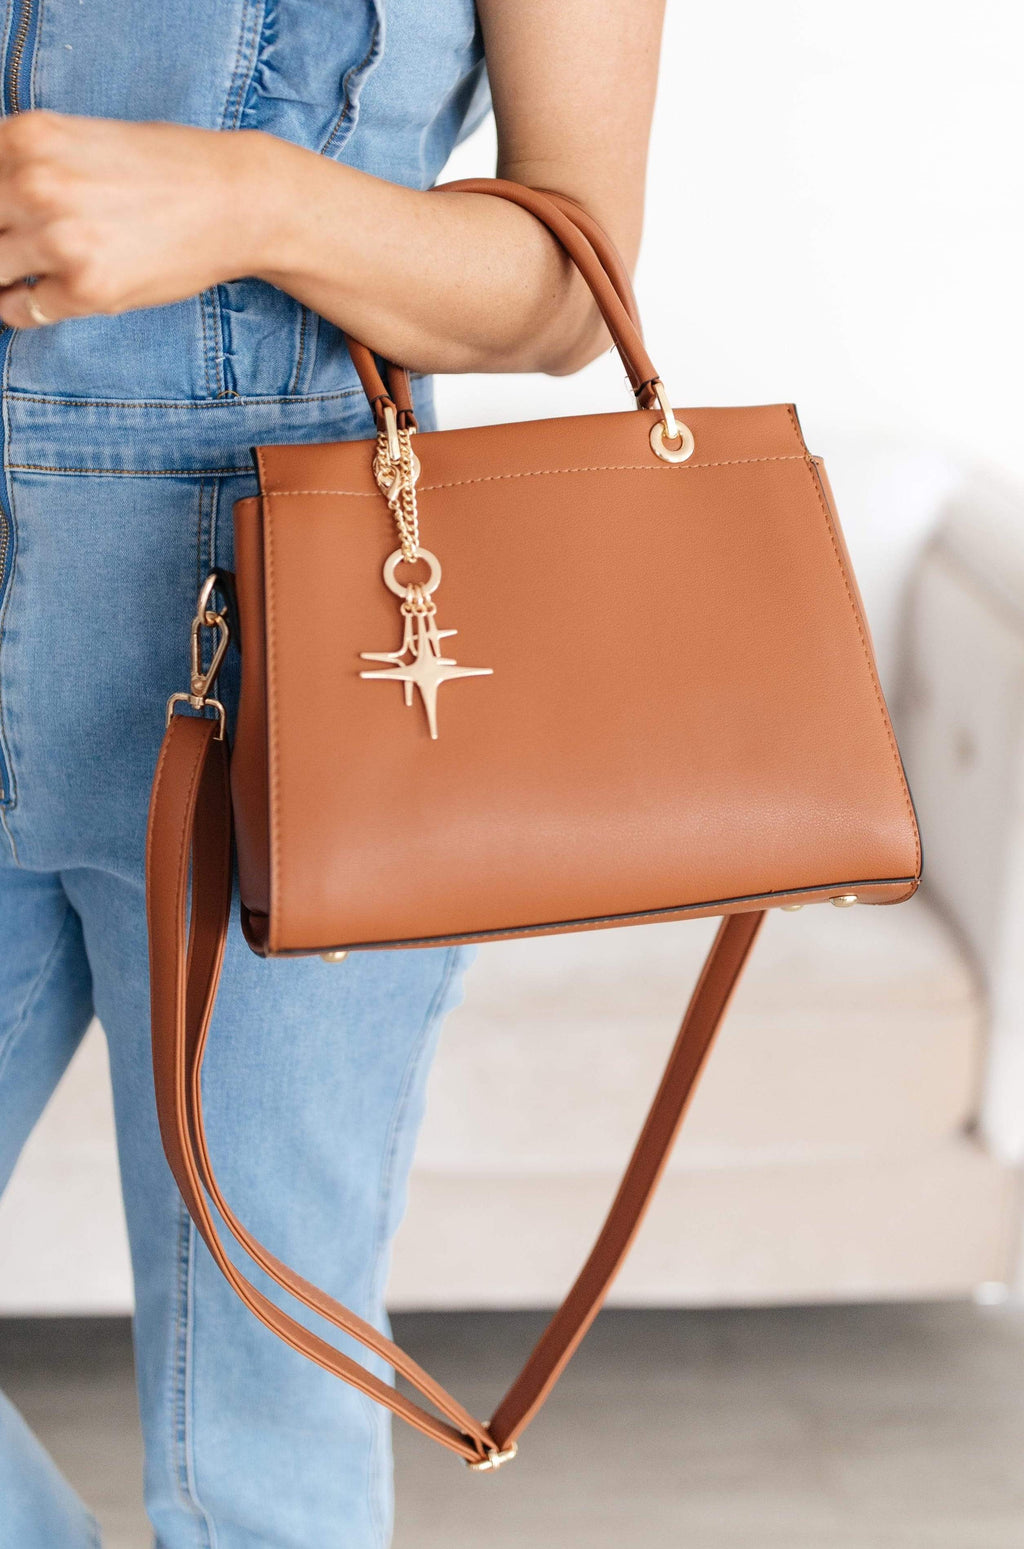 Ave Shops Bags Camel Most Charming Handbag